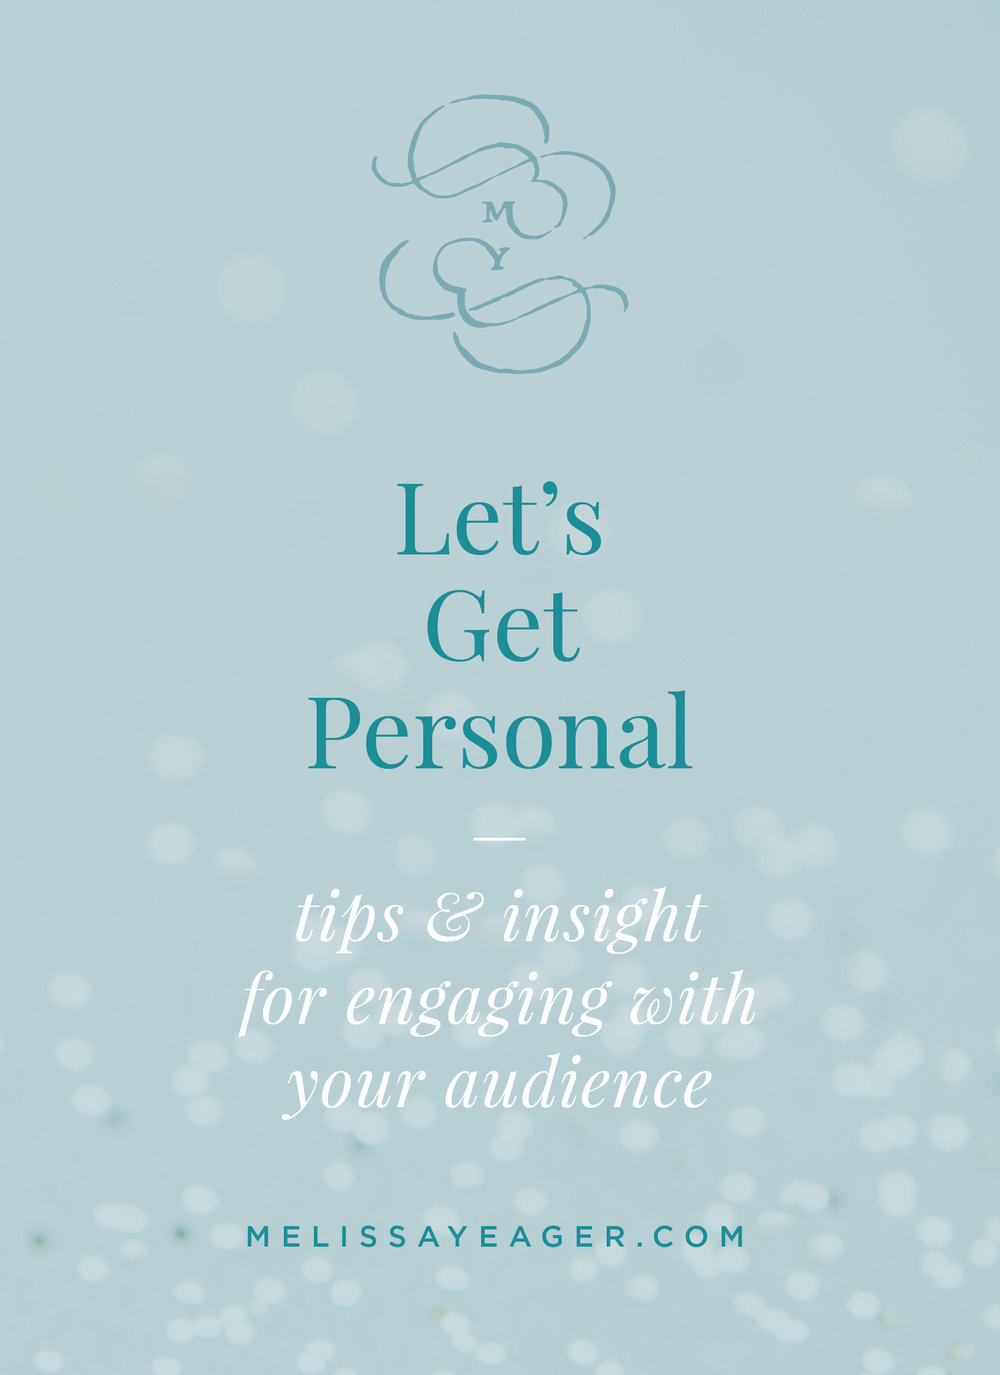 Let's Get Personal - tips & insight for engaging with your audience